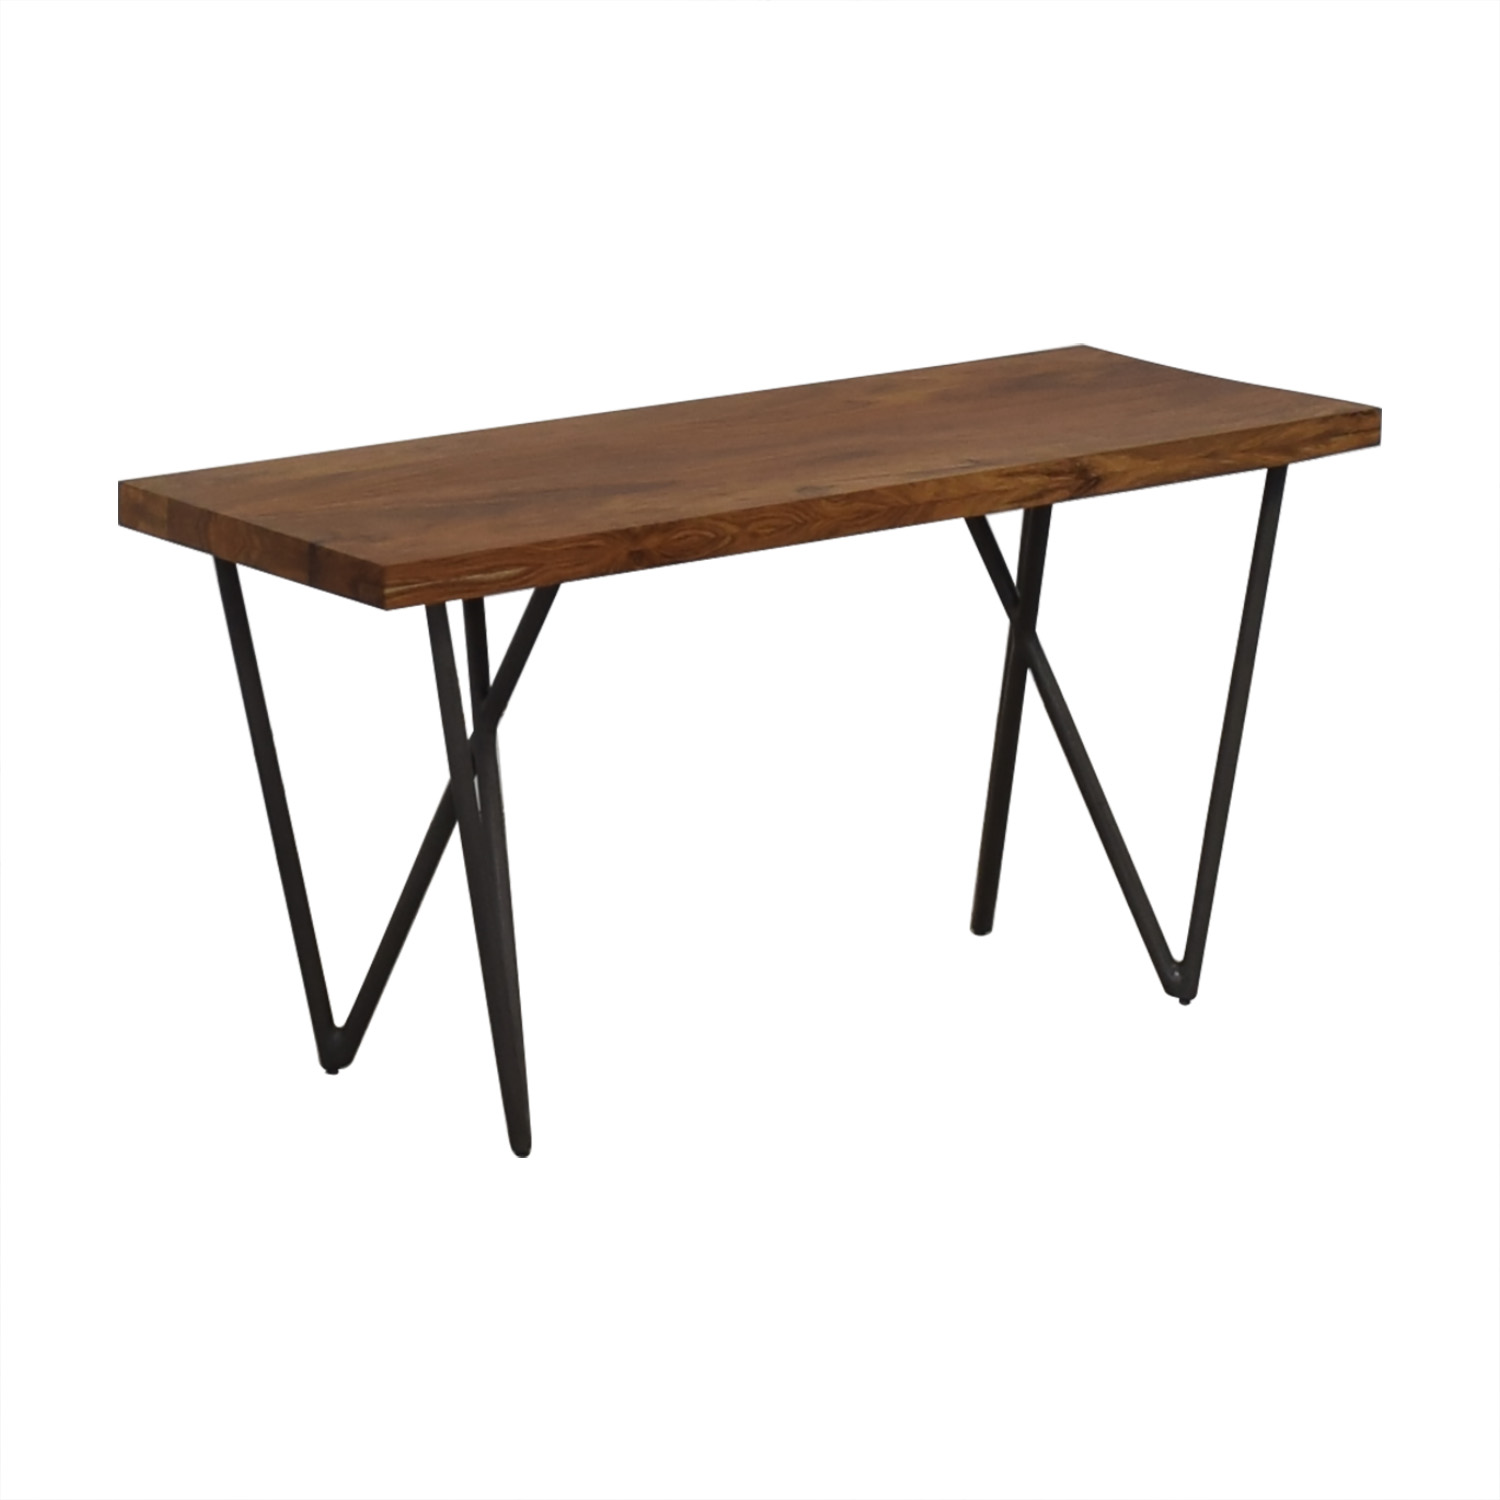 CB2  Wood and Green Bench sale